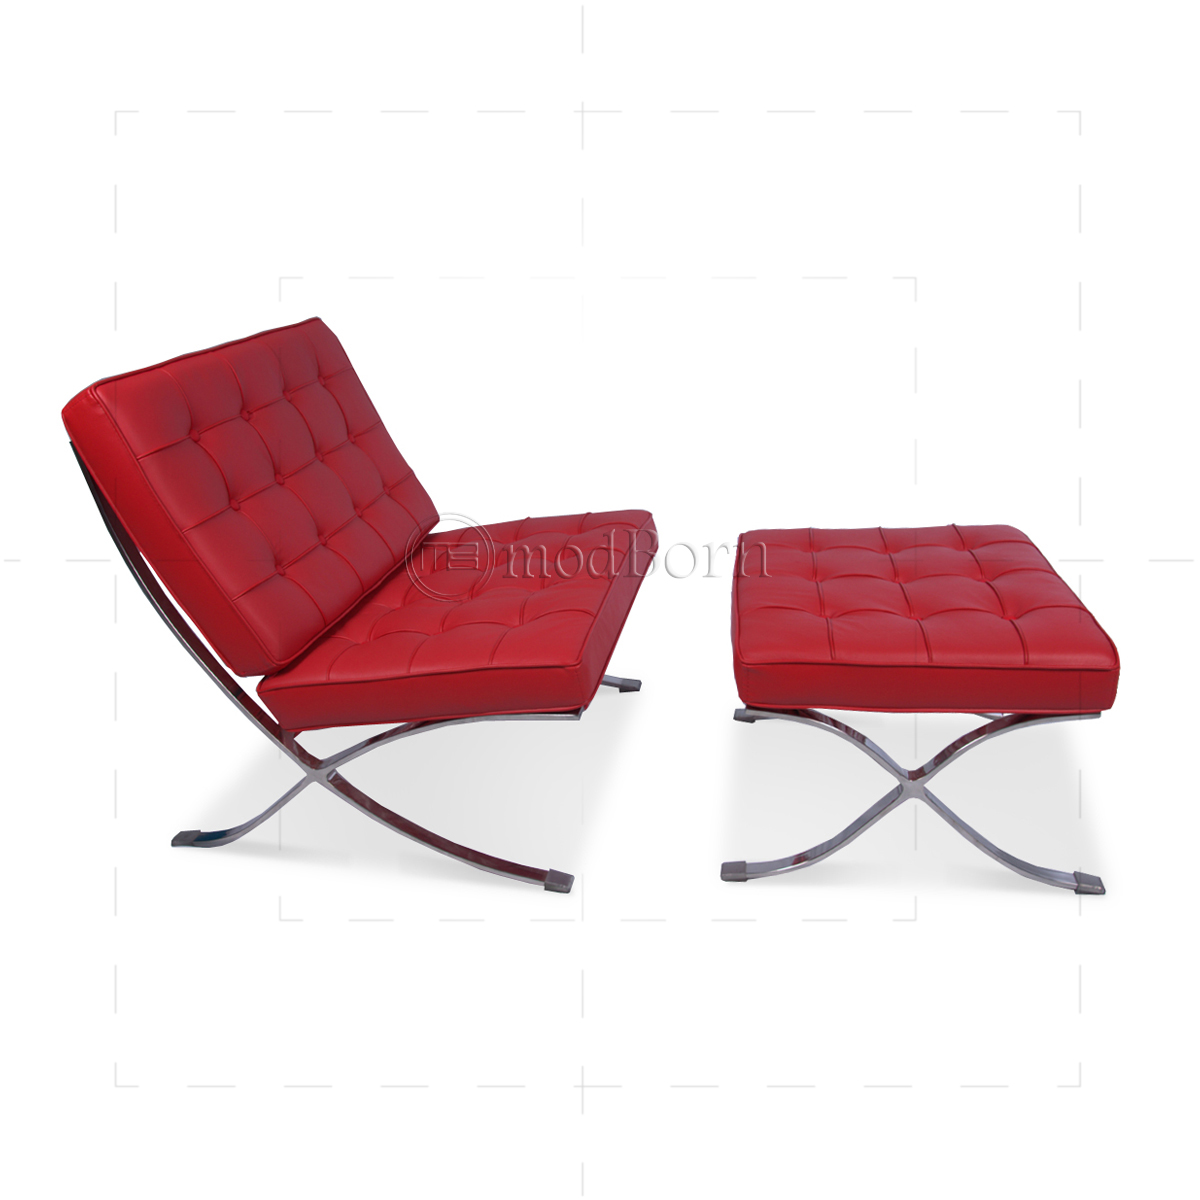 Ludwig mies ven der rohe barcelona style chair red leather for Barcelona chaise replica